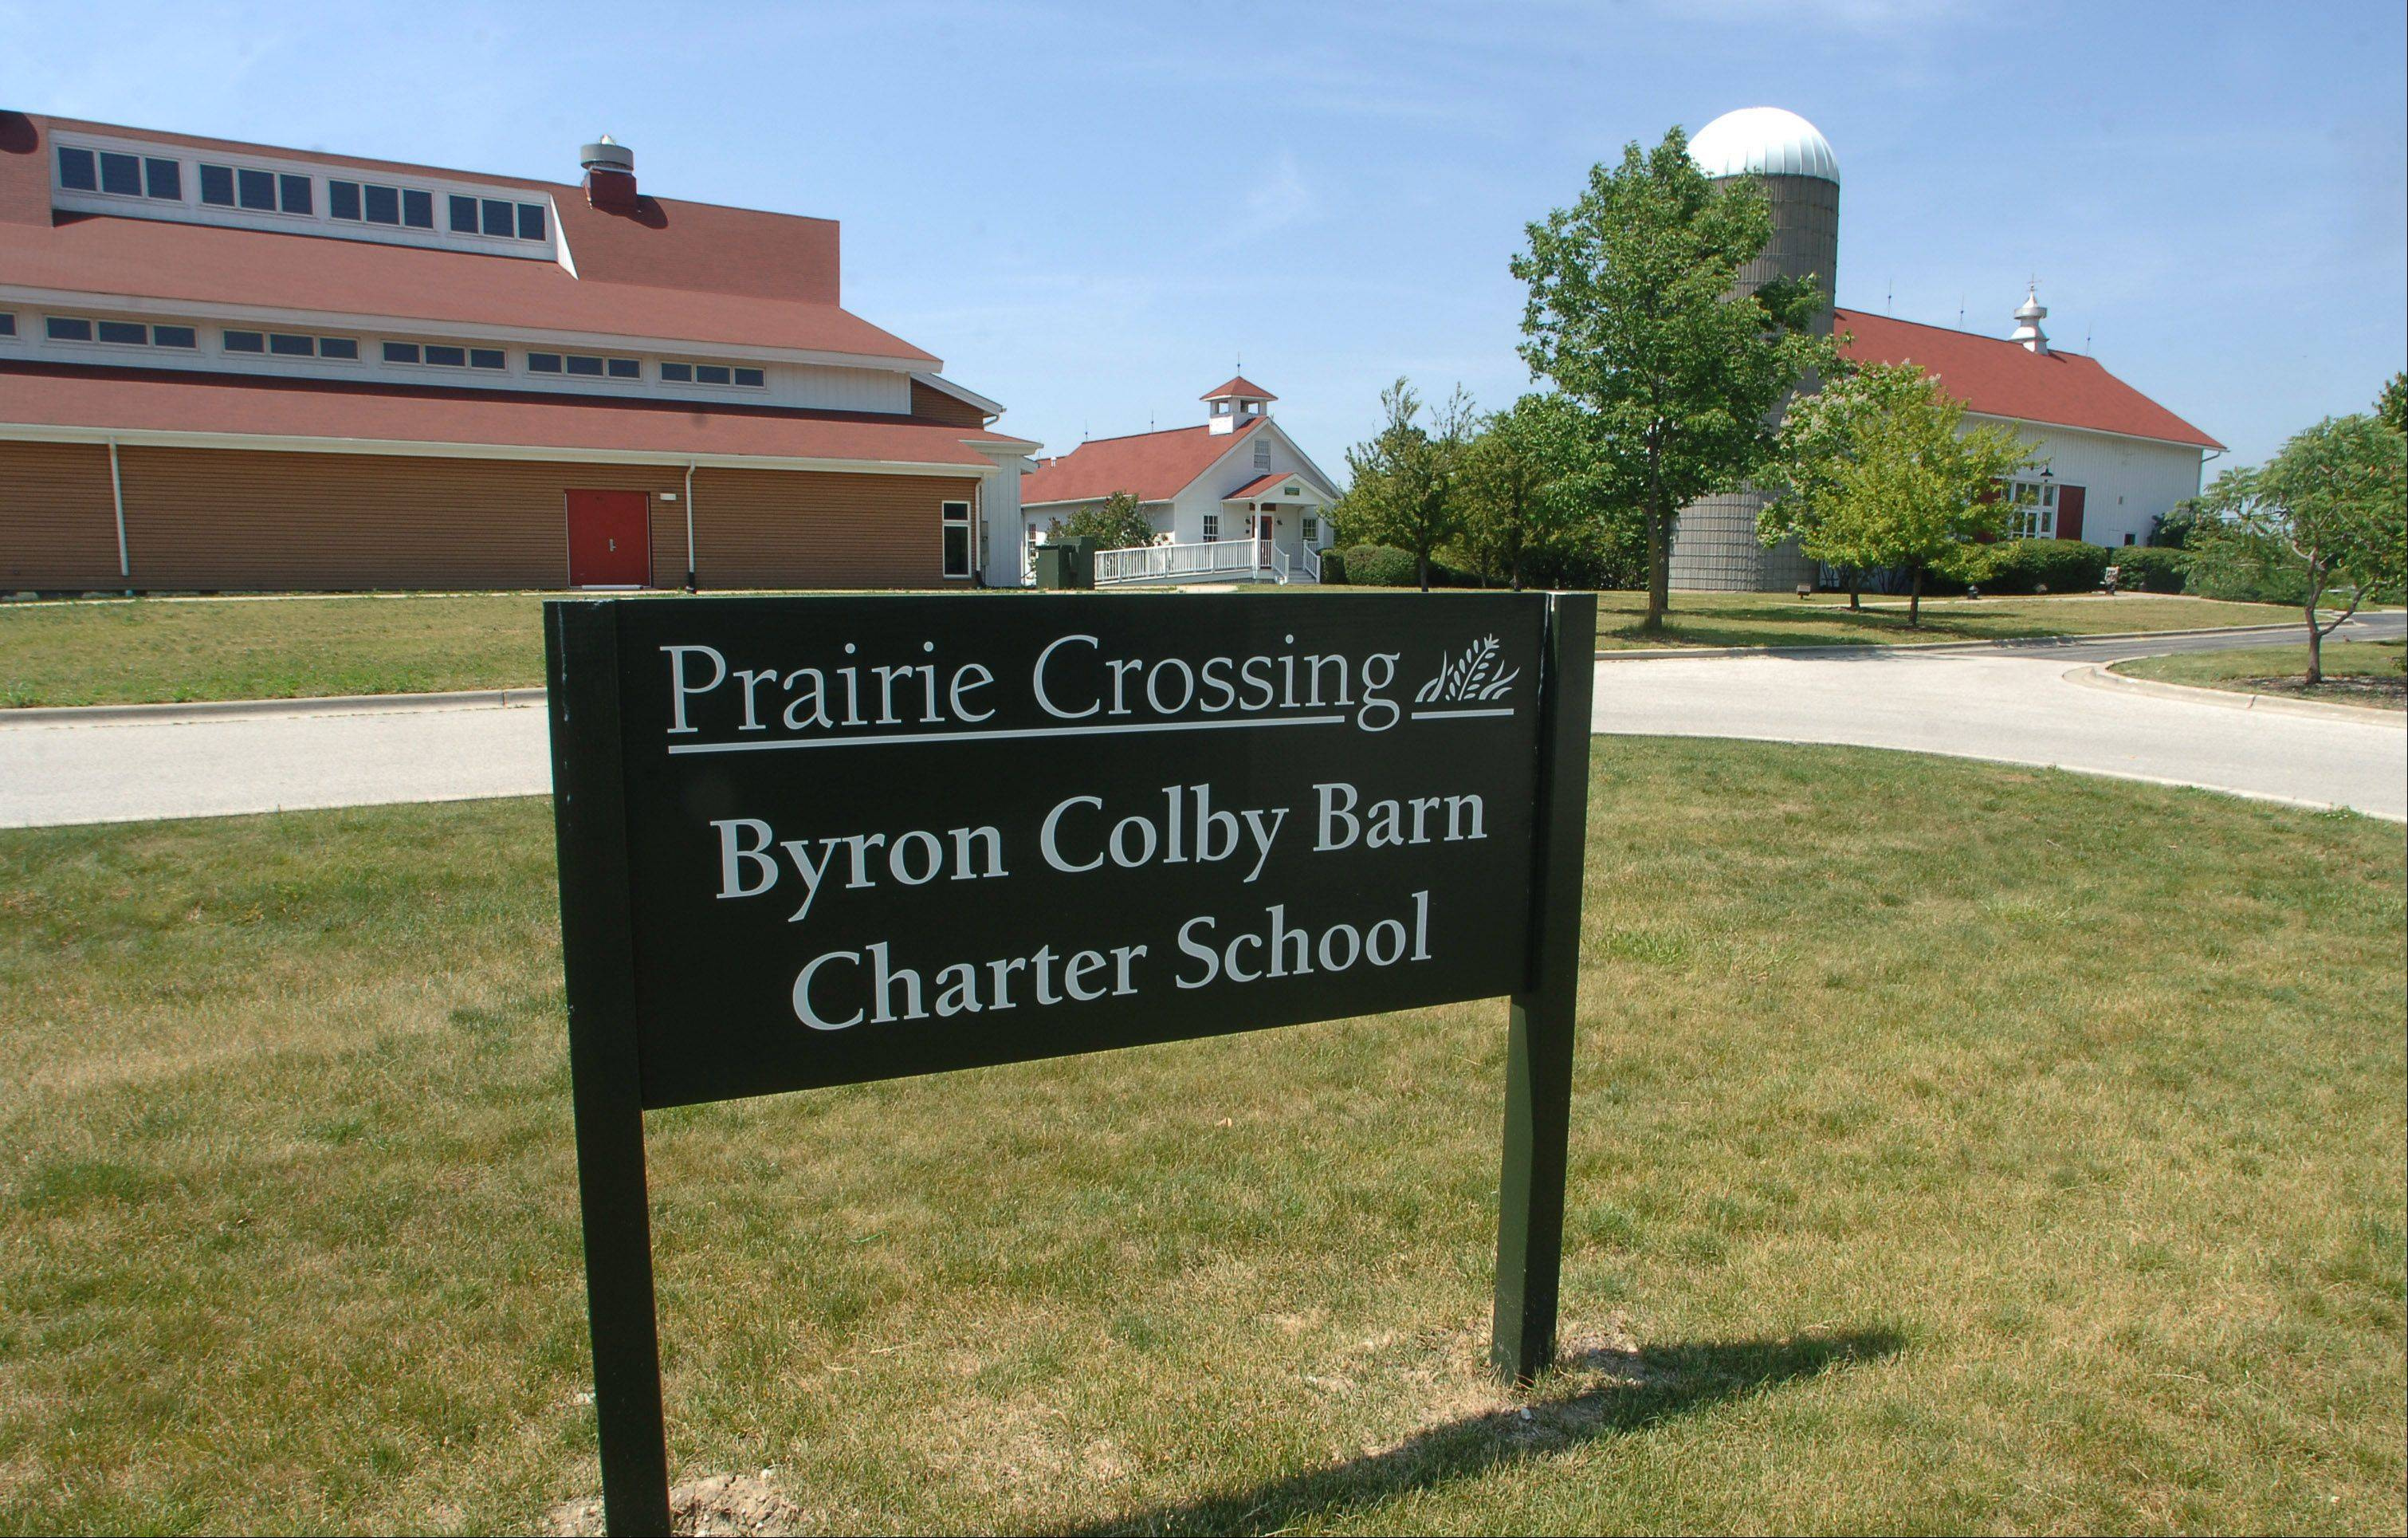 State funding for Prairie Crossing Charter School in Grayslake continues to be a source of contention for leaders in surrounding Woodland Elementary School District 50.